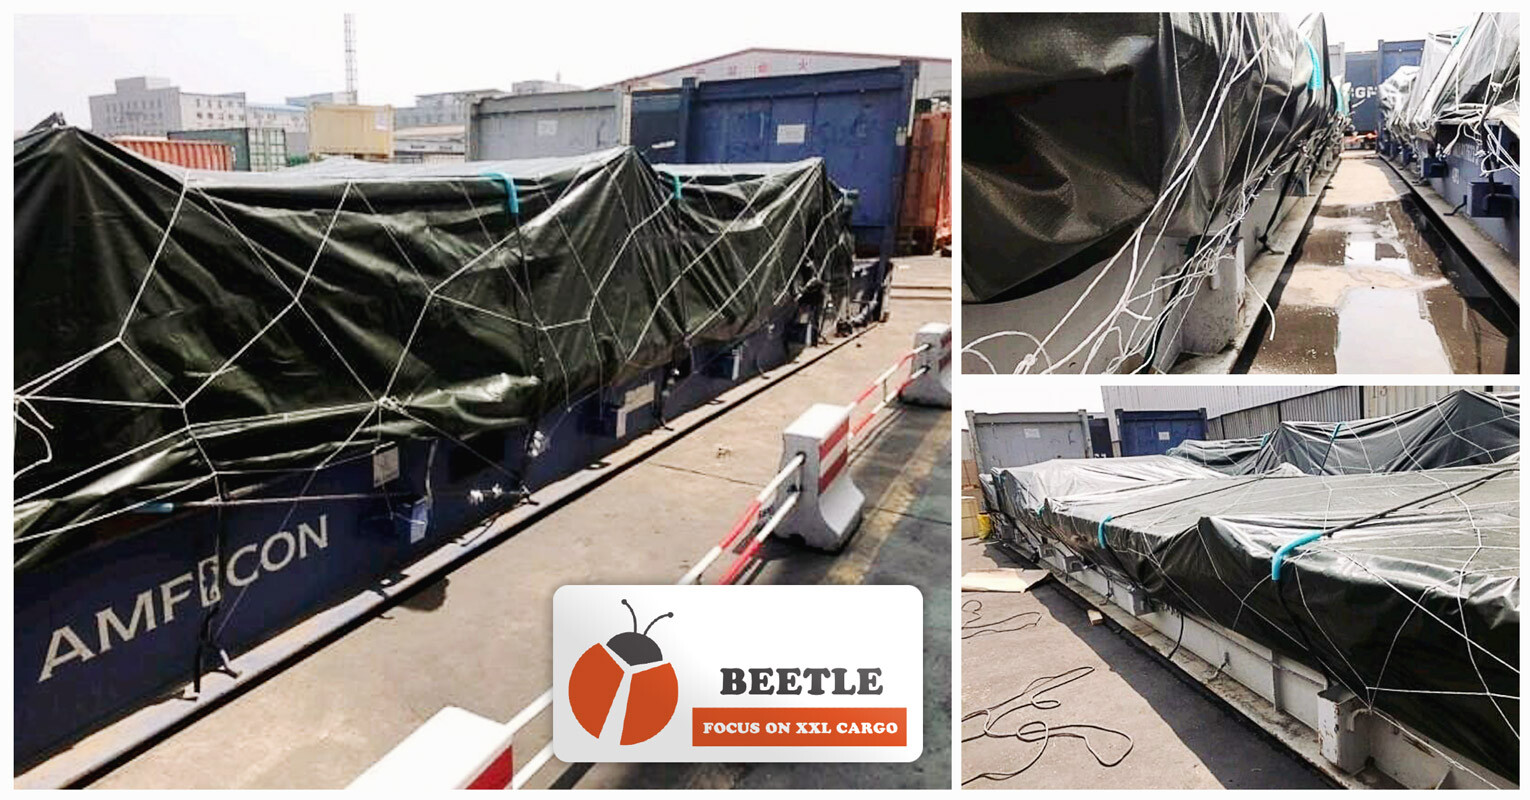 Shanghai Beetle Shipped OOG from Tianjin to Jebel Ali